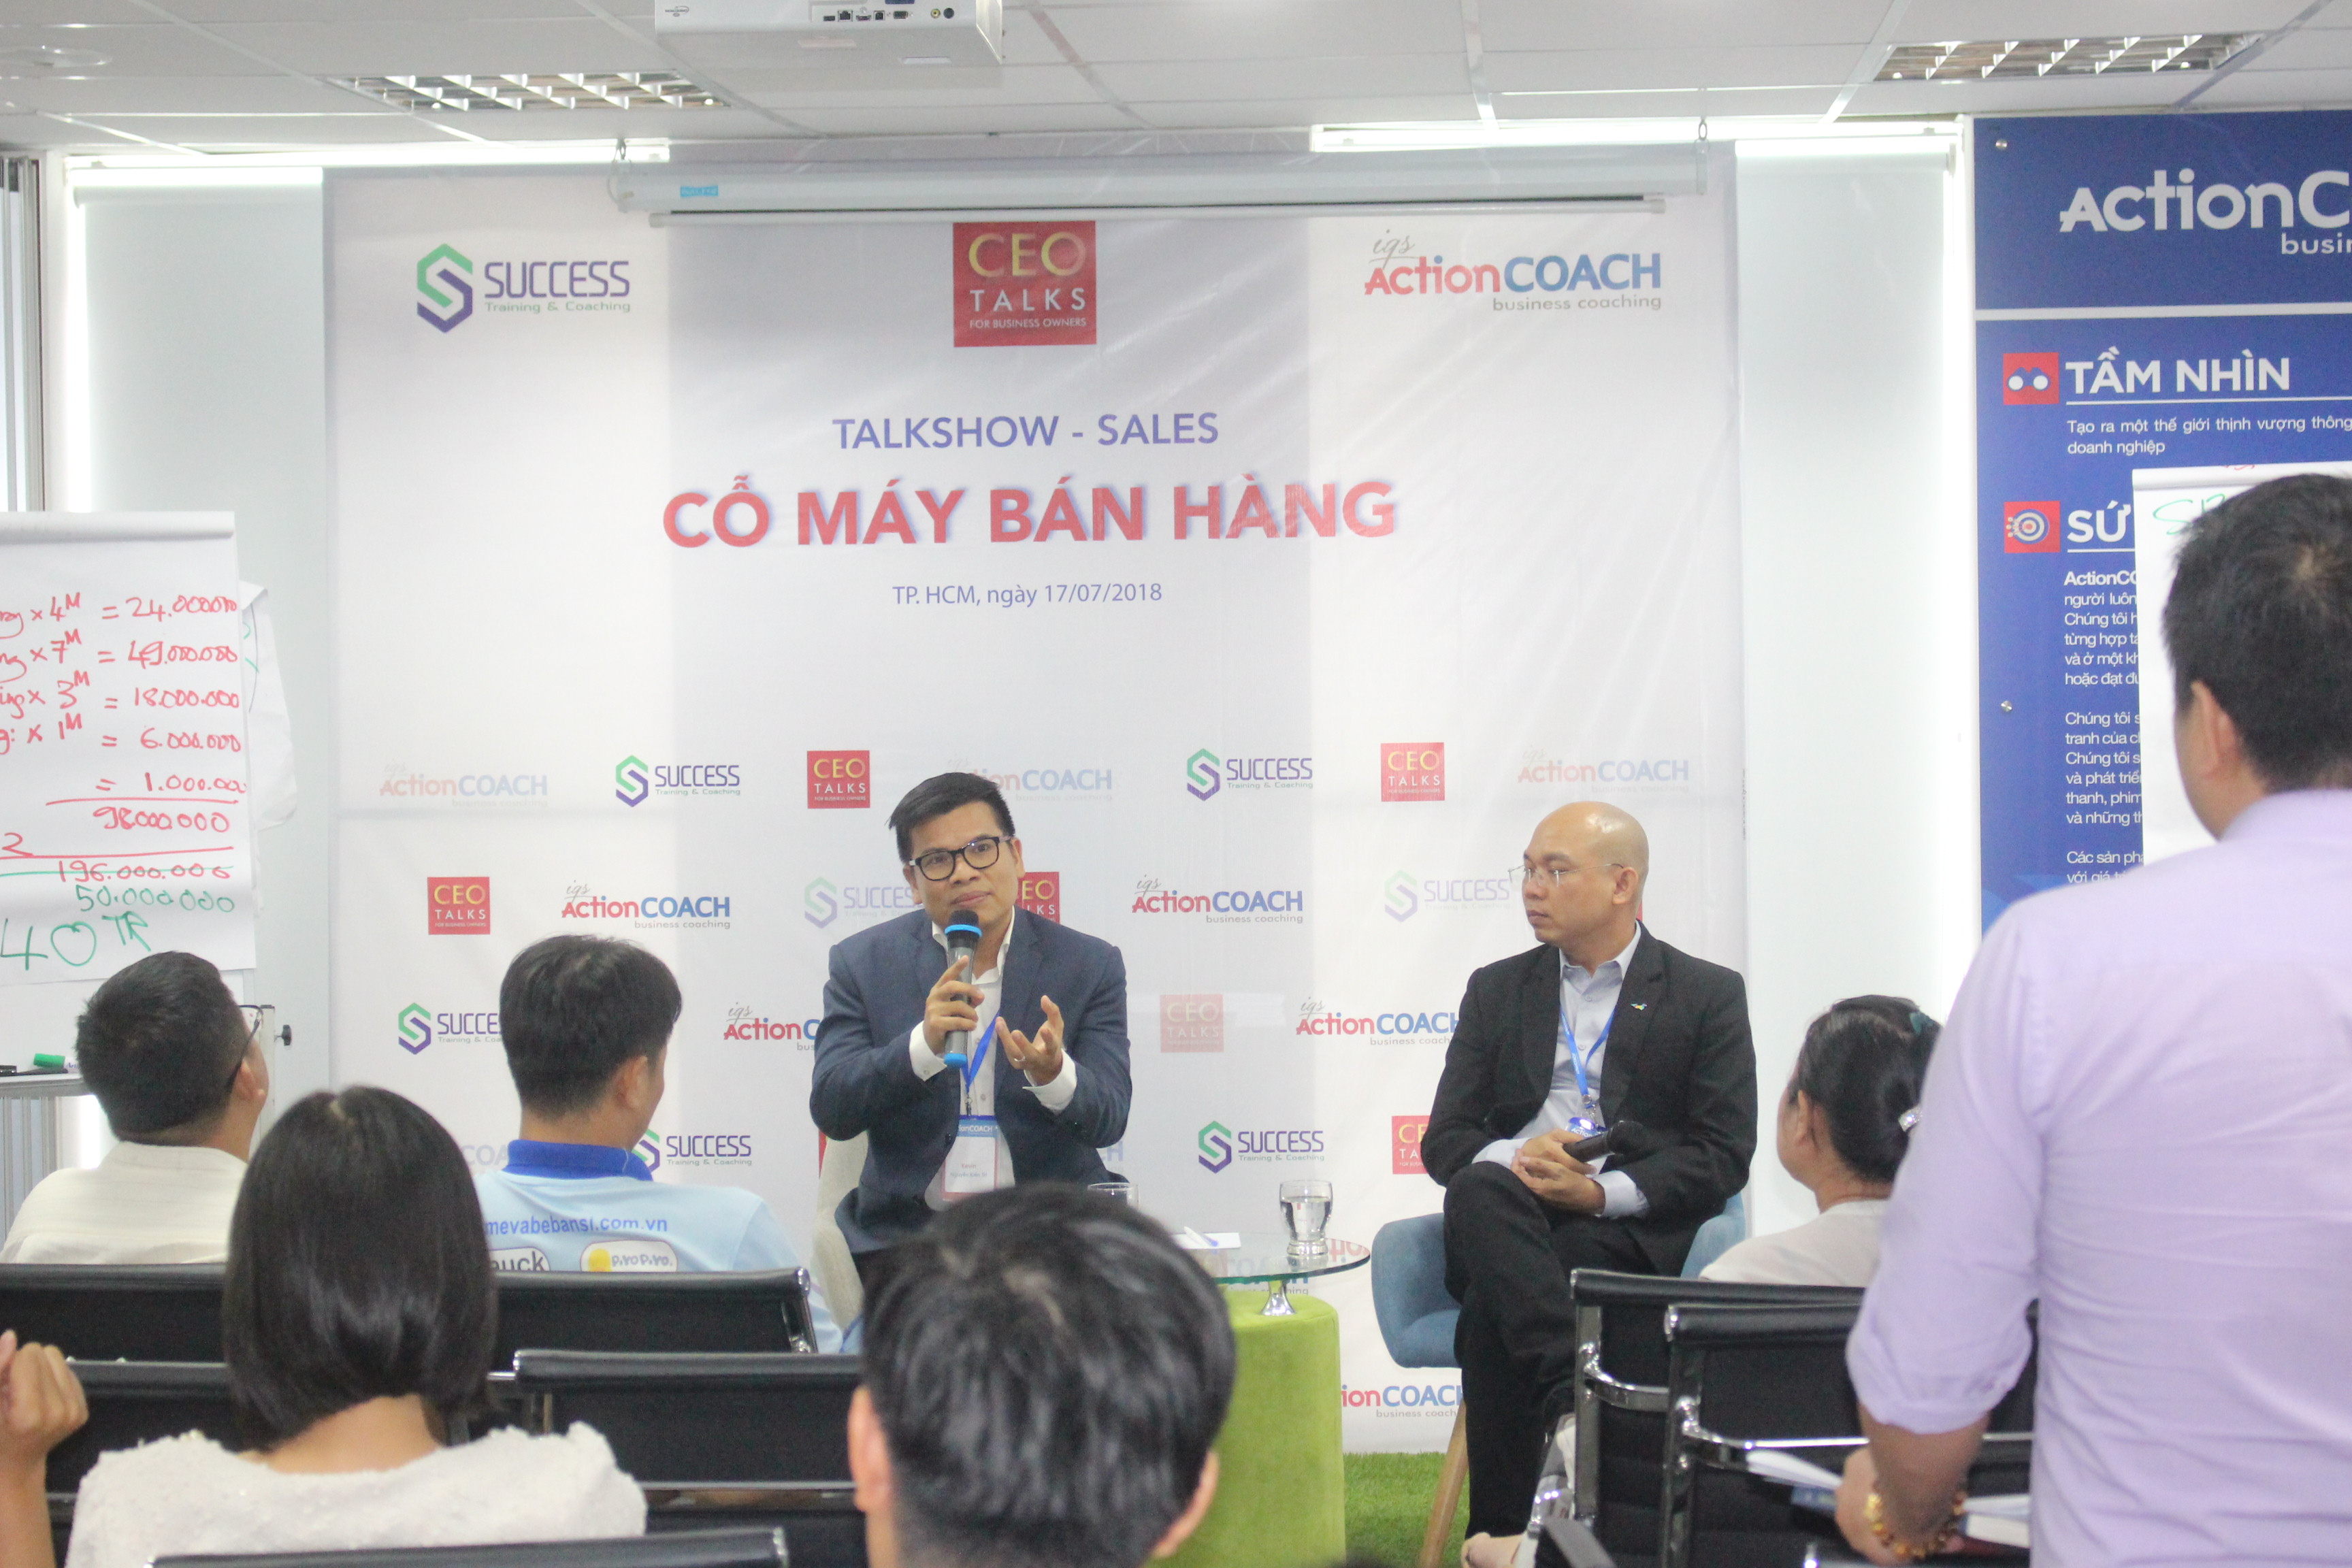 CEO Talks Firm IQS ActionCOACH